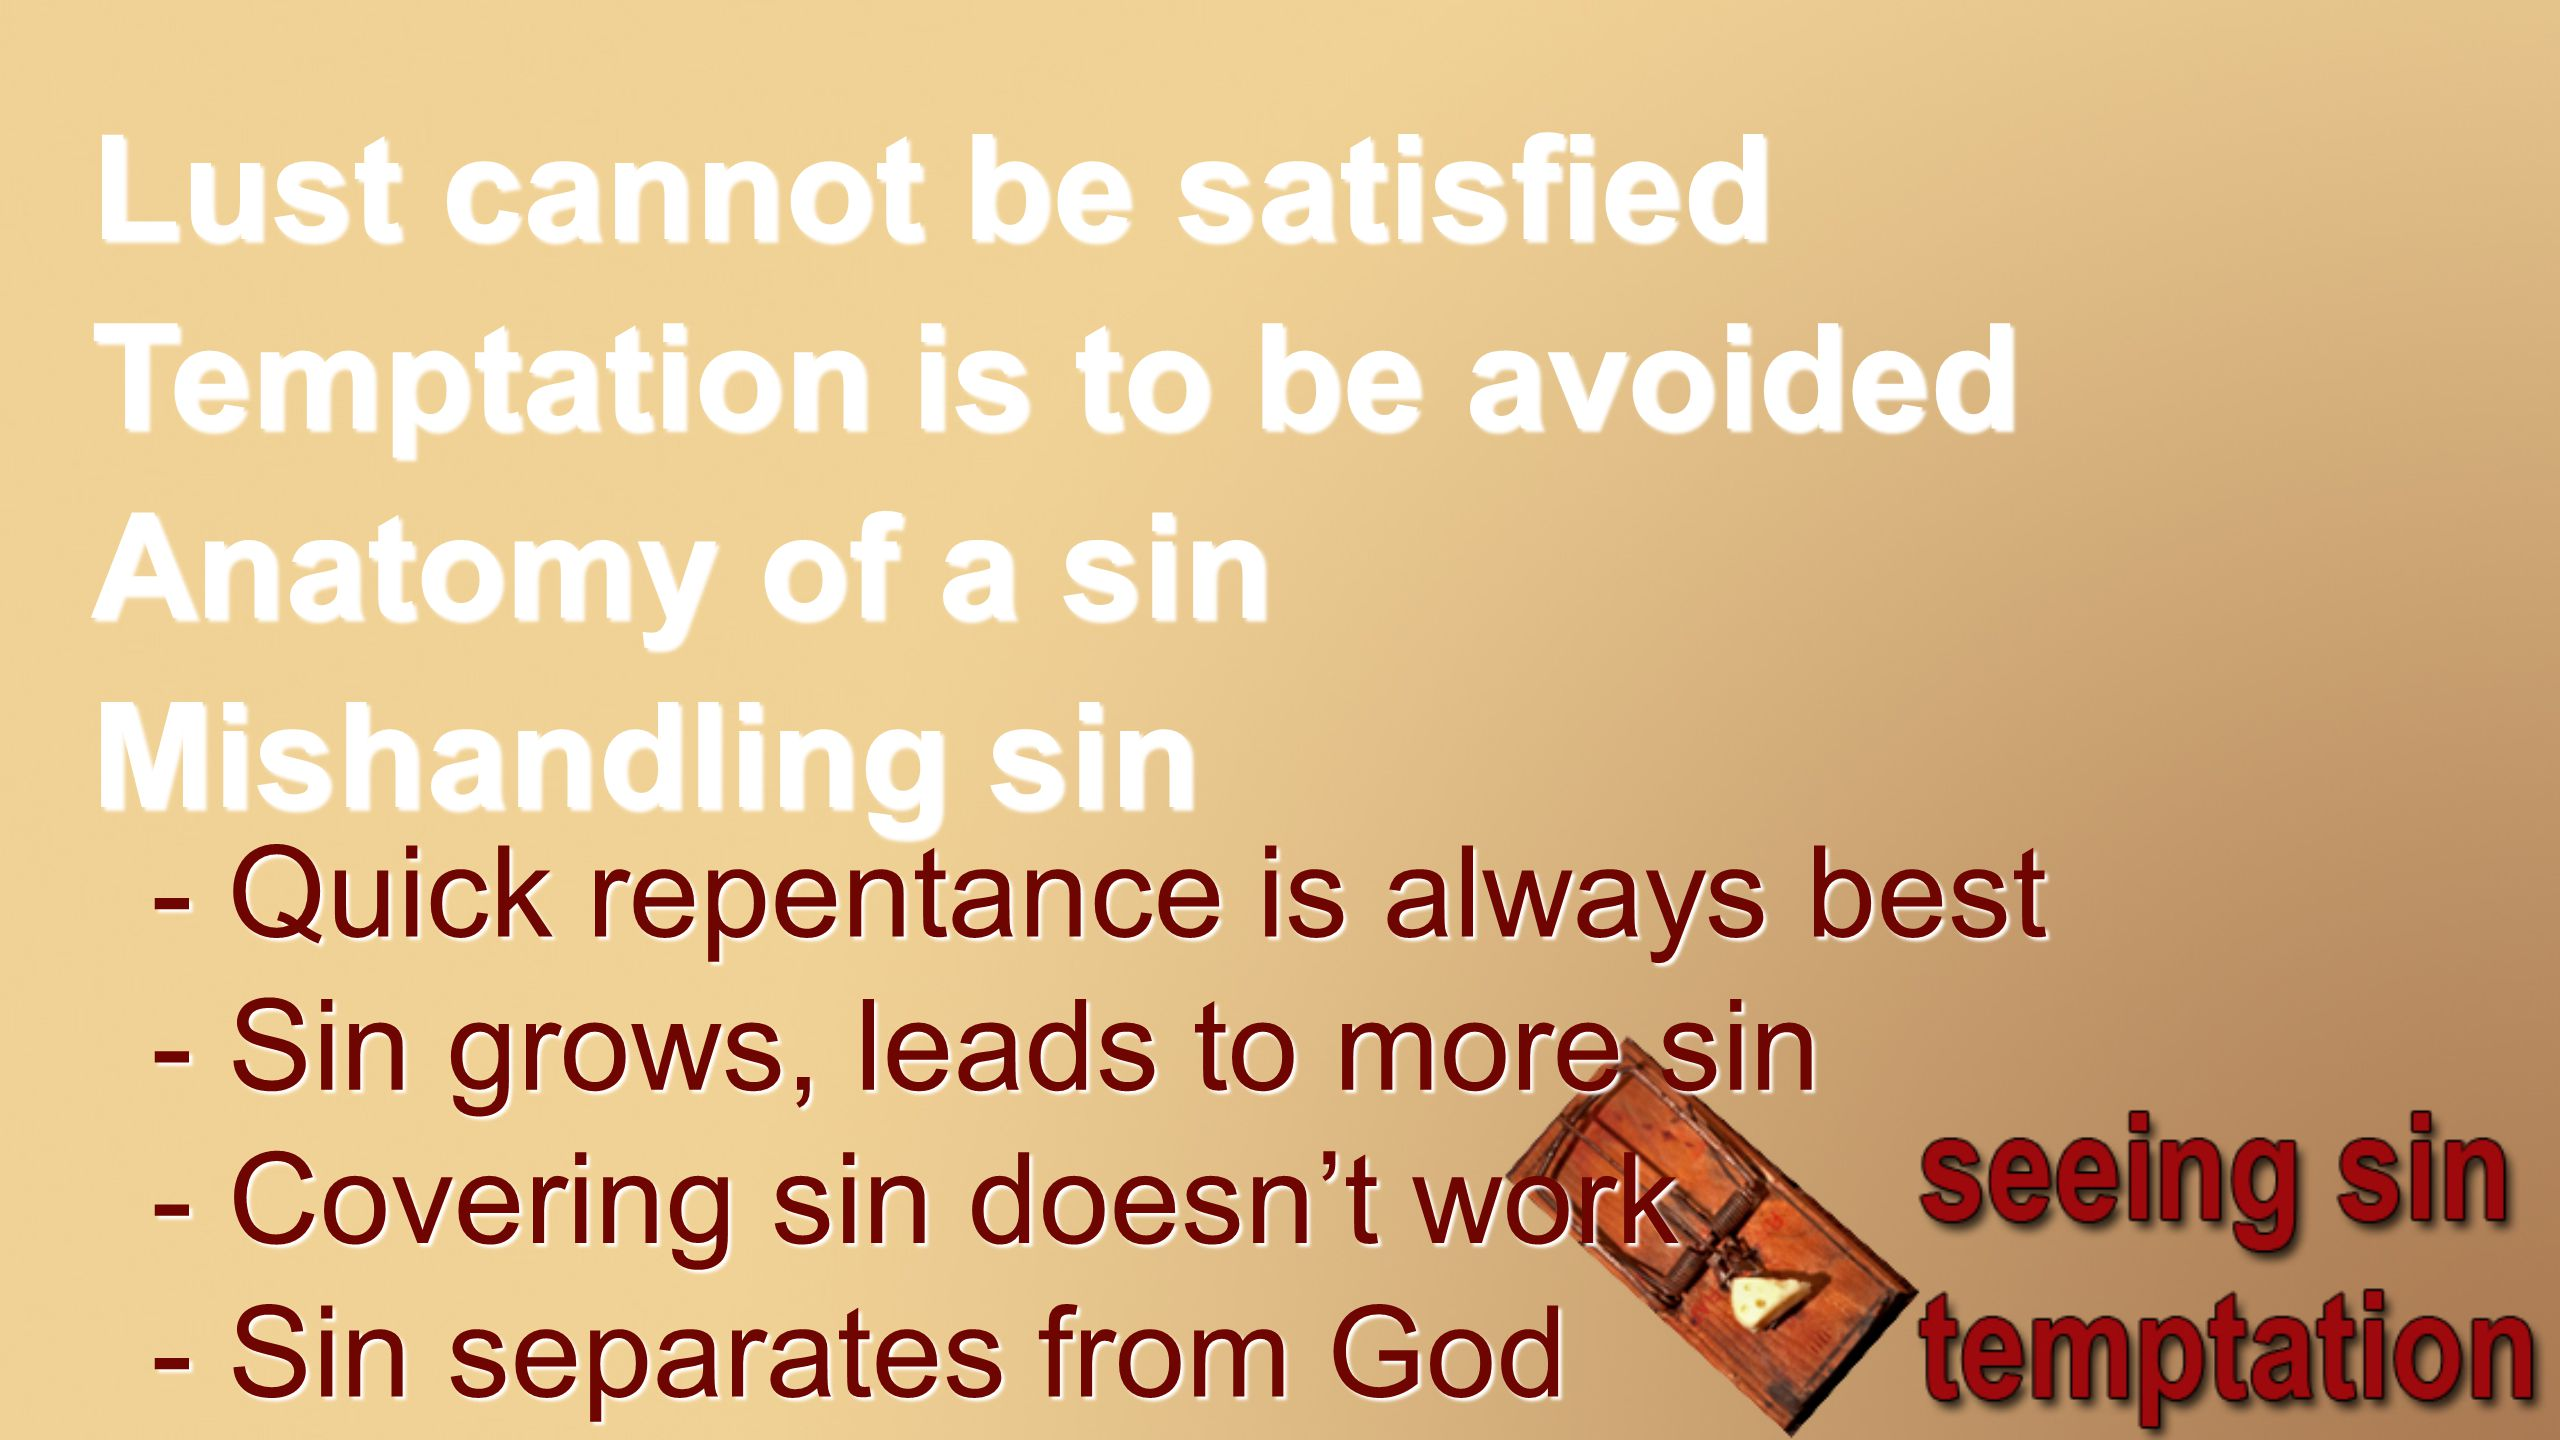 Lust cannot be satisfied Temptation is to be avoided Anatomy of a sin Mishandling sin - Quick repentance is always best - Sin grows, leads to more sin - Covering sin doesn't work - Sin separates from God